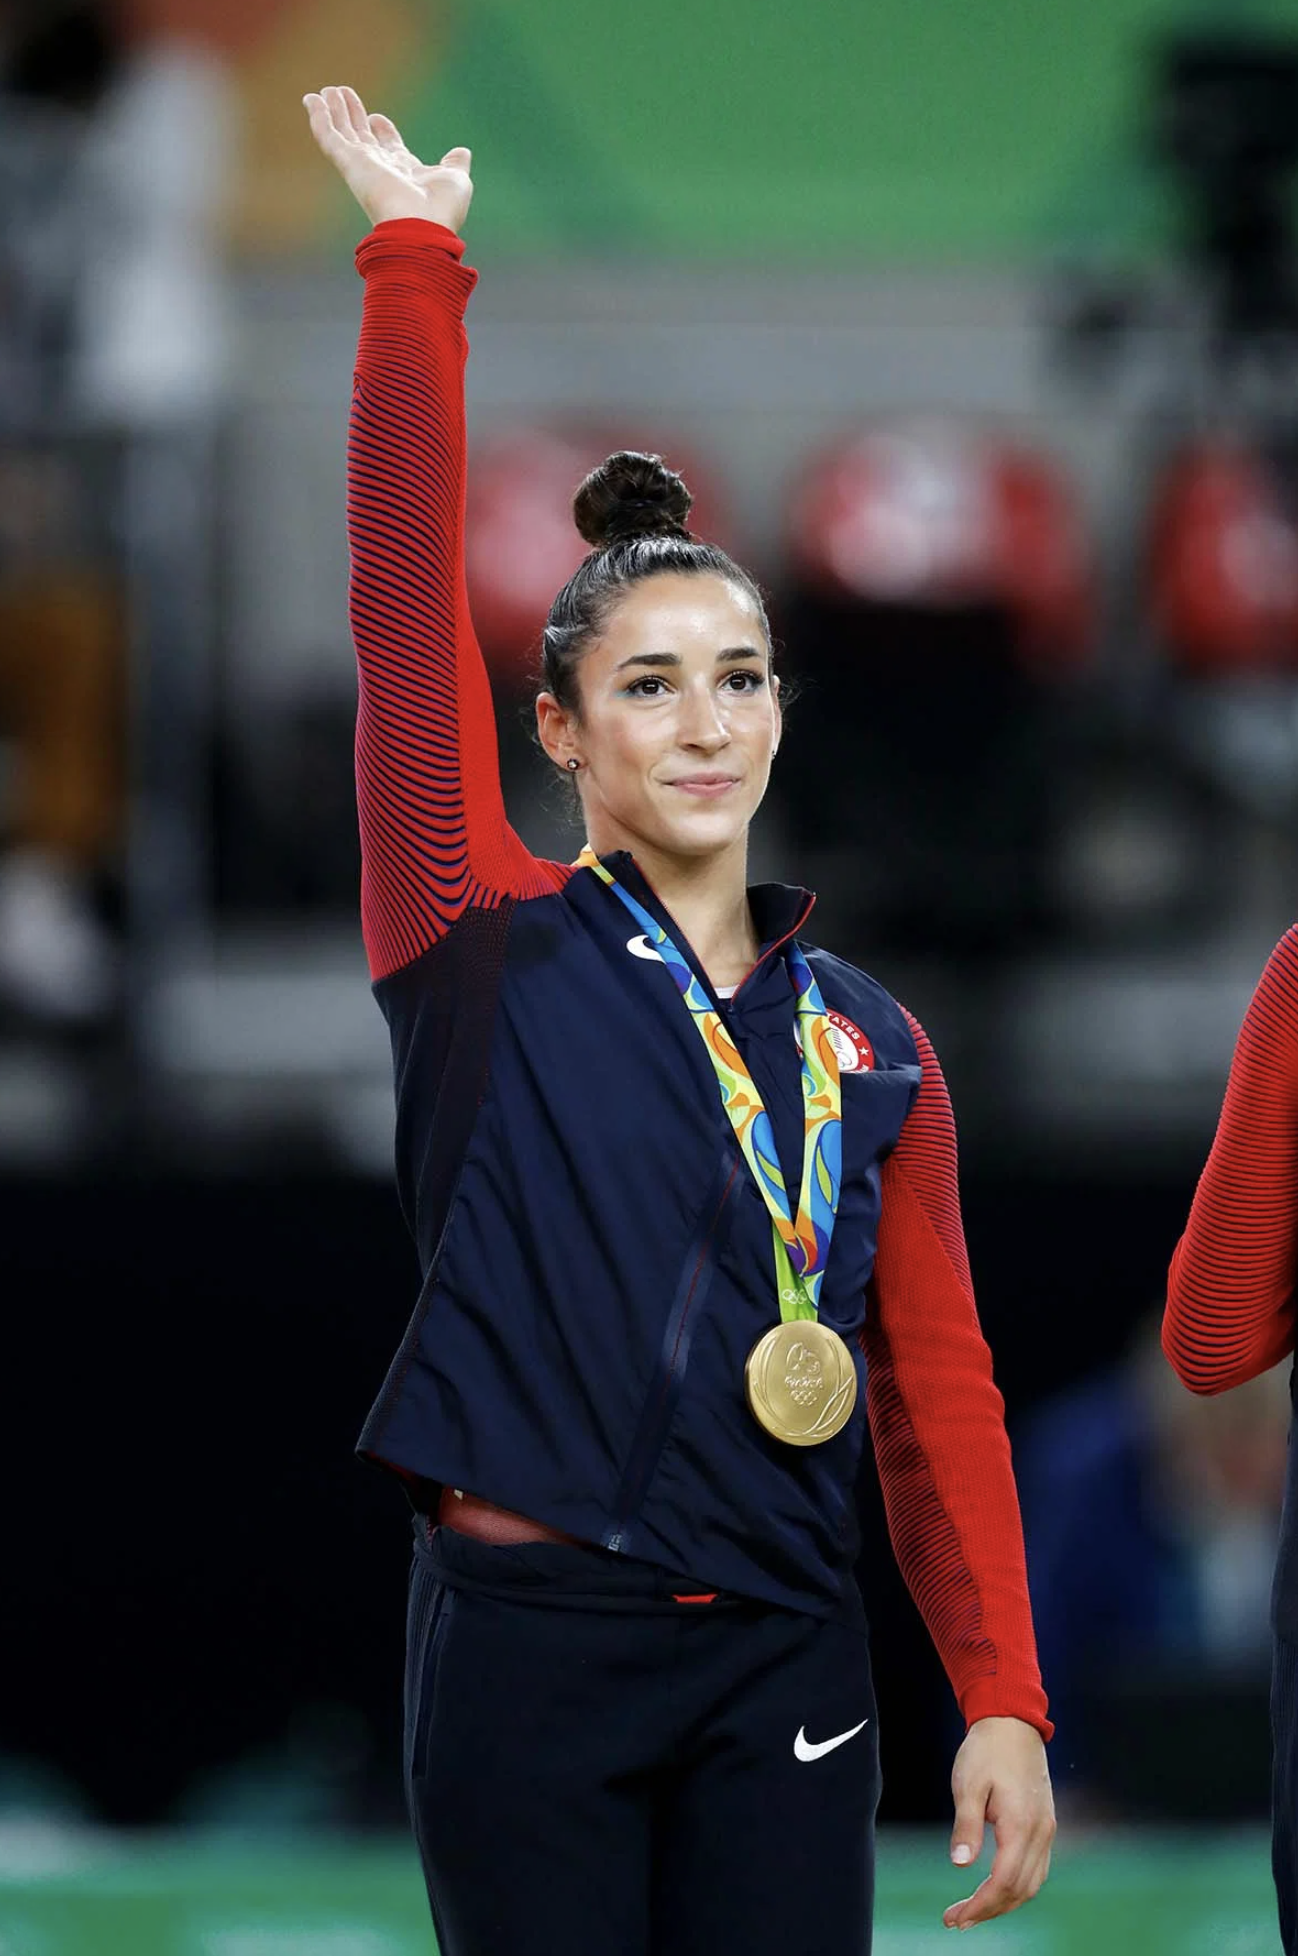 Aly Raisman Is 'Not Interested' in Doing Gymnastics Anymore: I Was 'On All the Time' as an Athlete